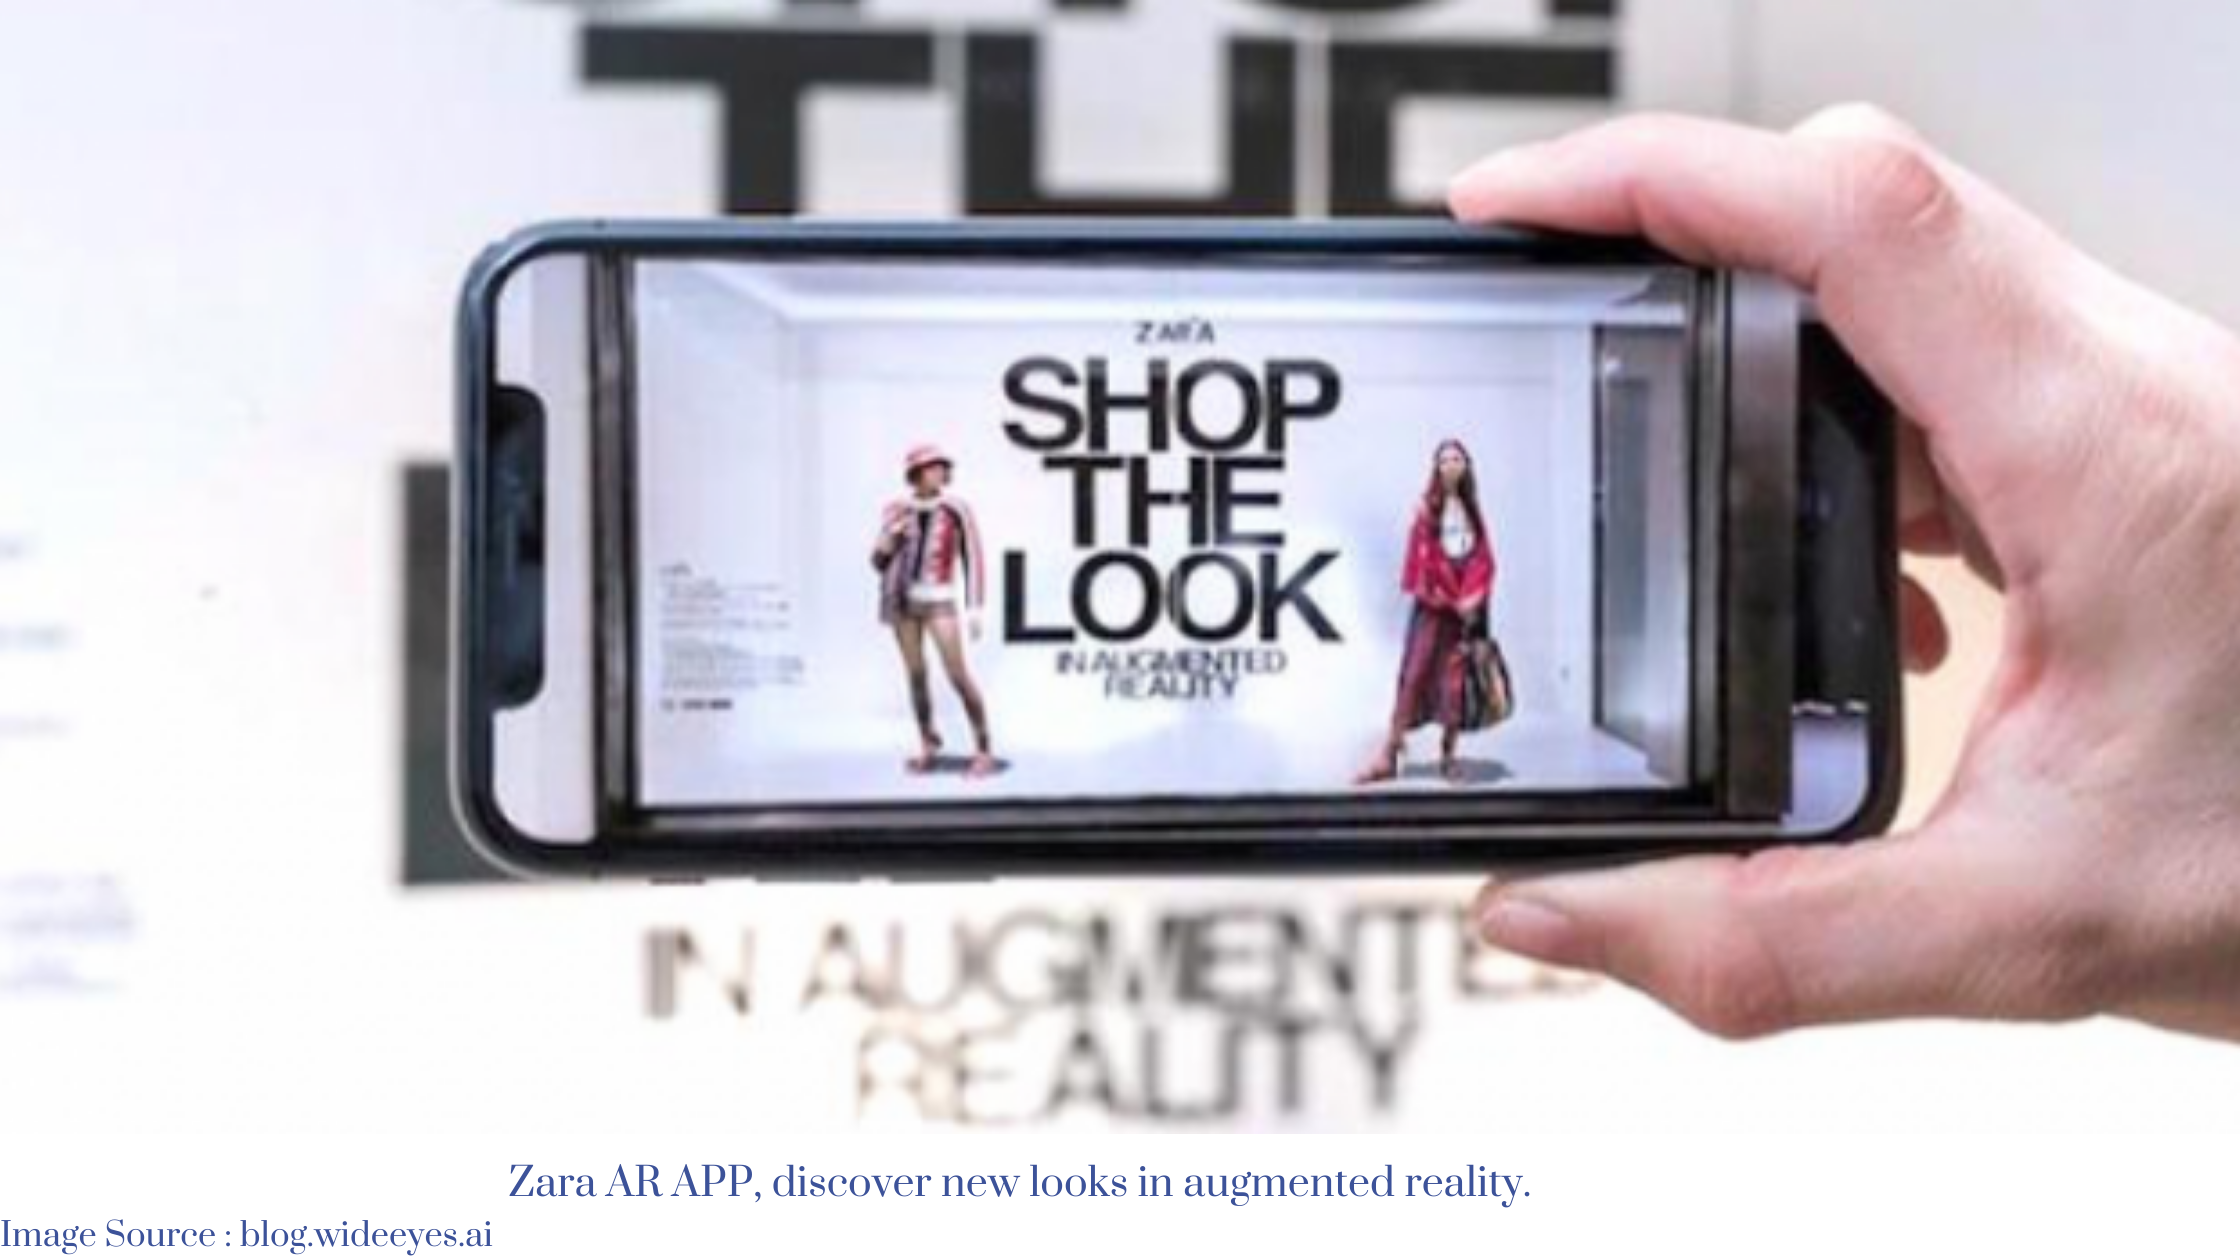 Zara and 'How to Use Customer Intelligence' with Augmented Reality